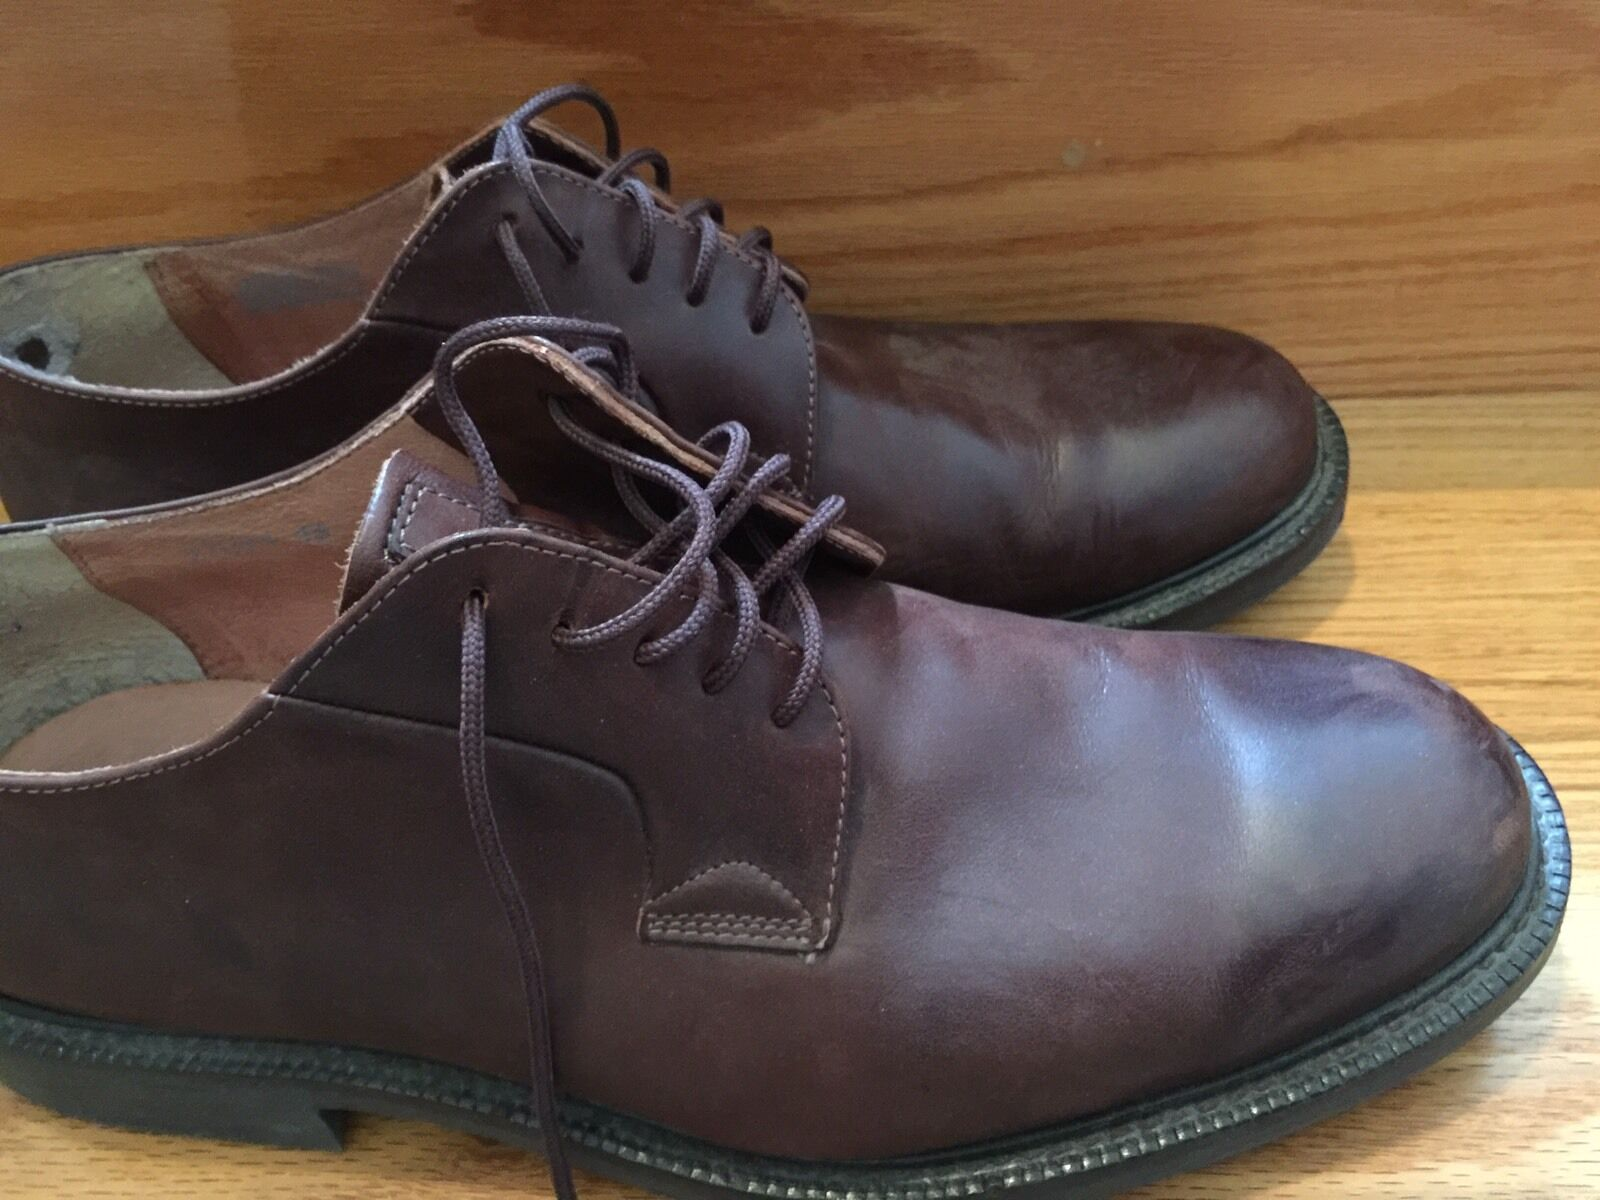 Men's J Crew Oxford shoes Brown Lace Up Casual Or Dress 13 D M Medium 97091